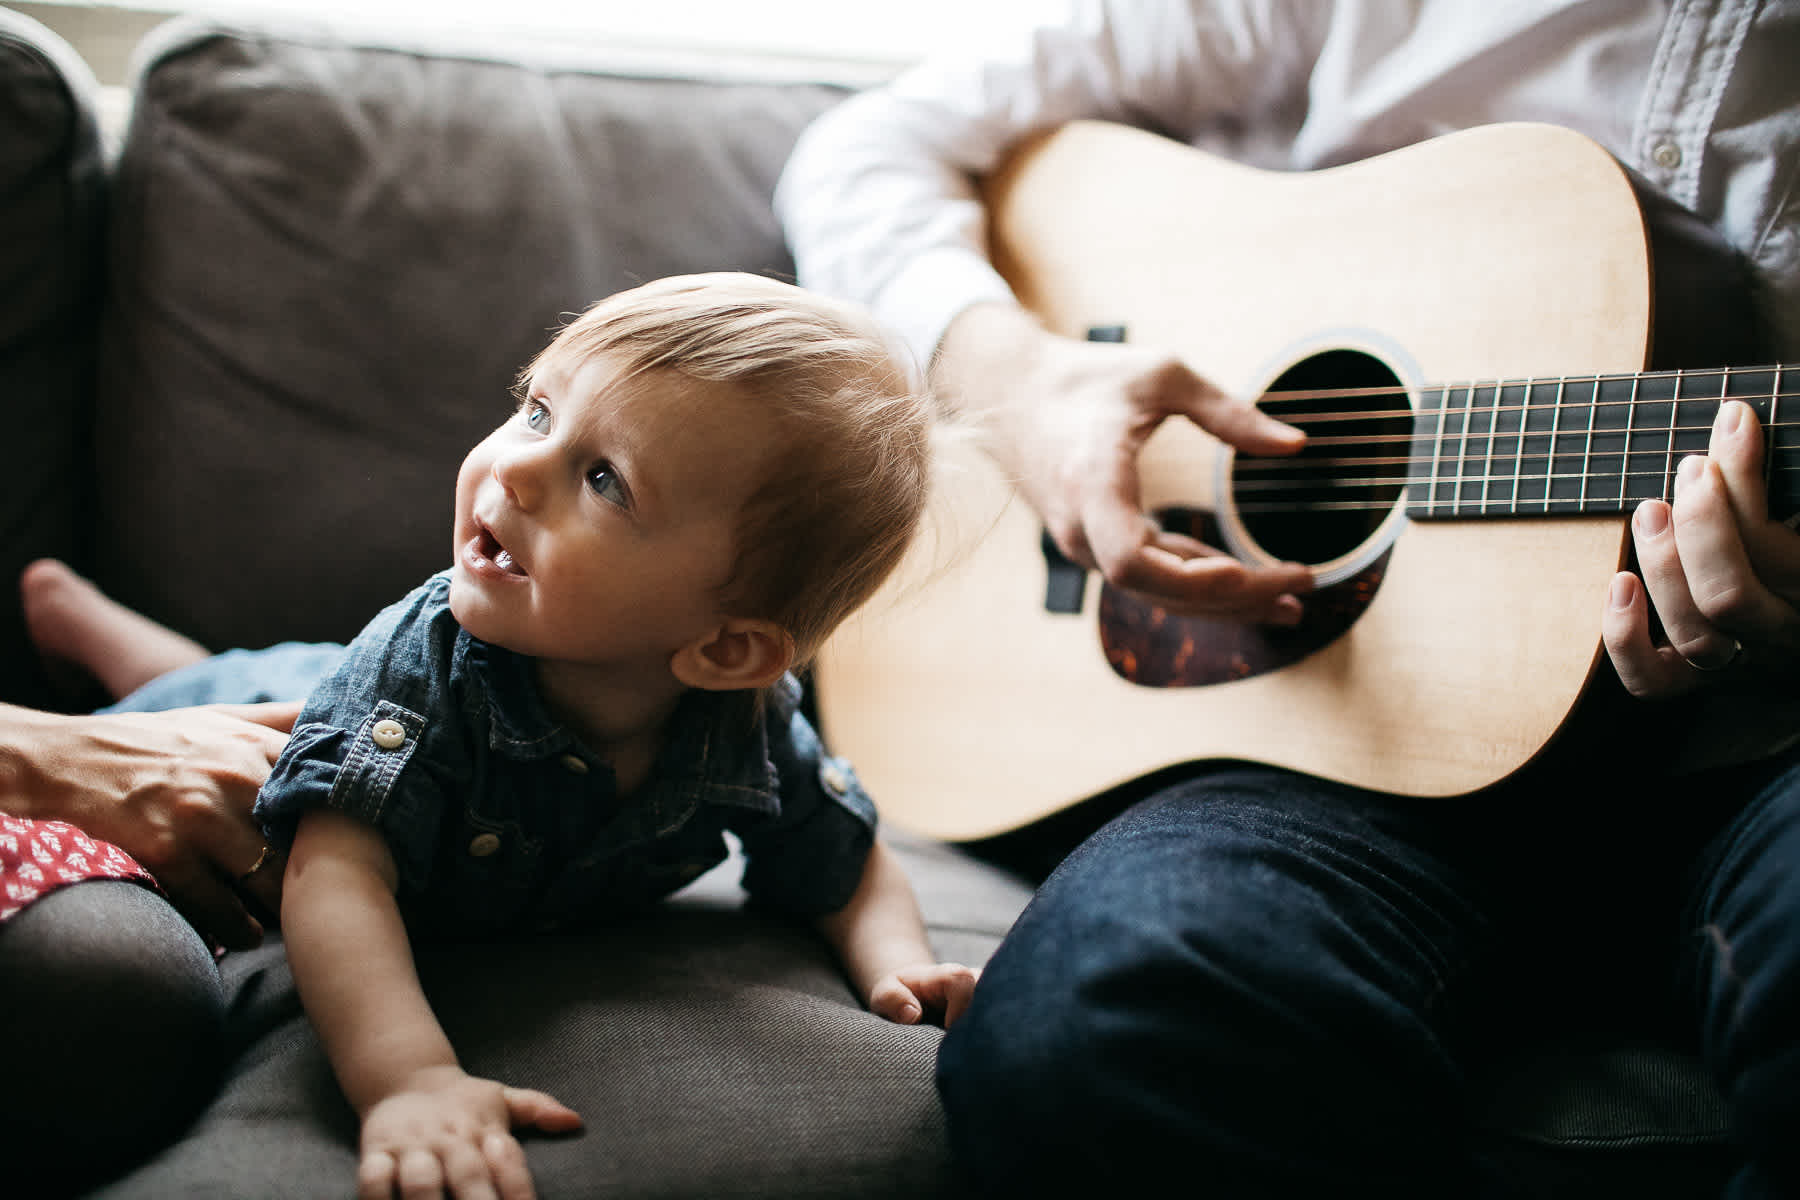 in-home-san-francisco-lifestyle-family-session-27